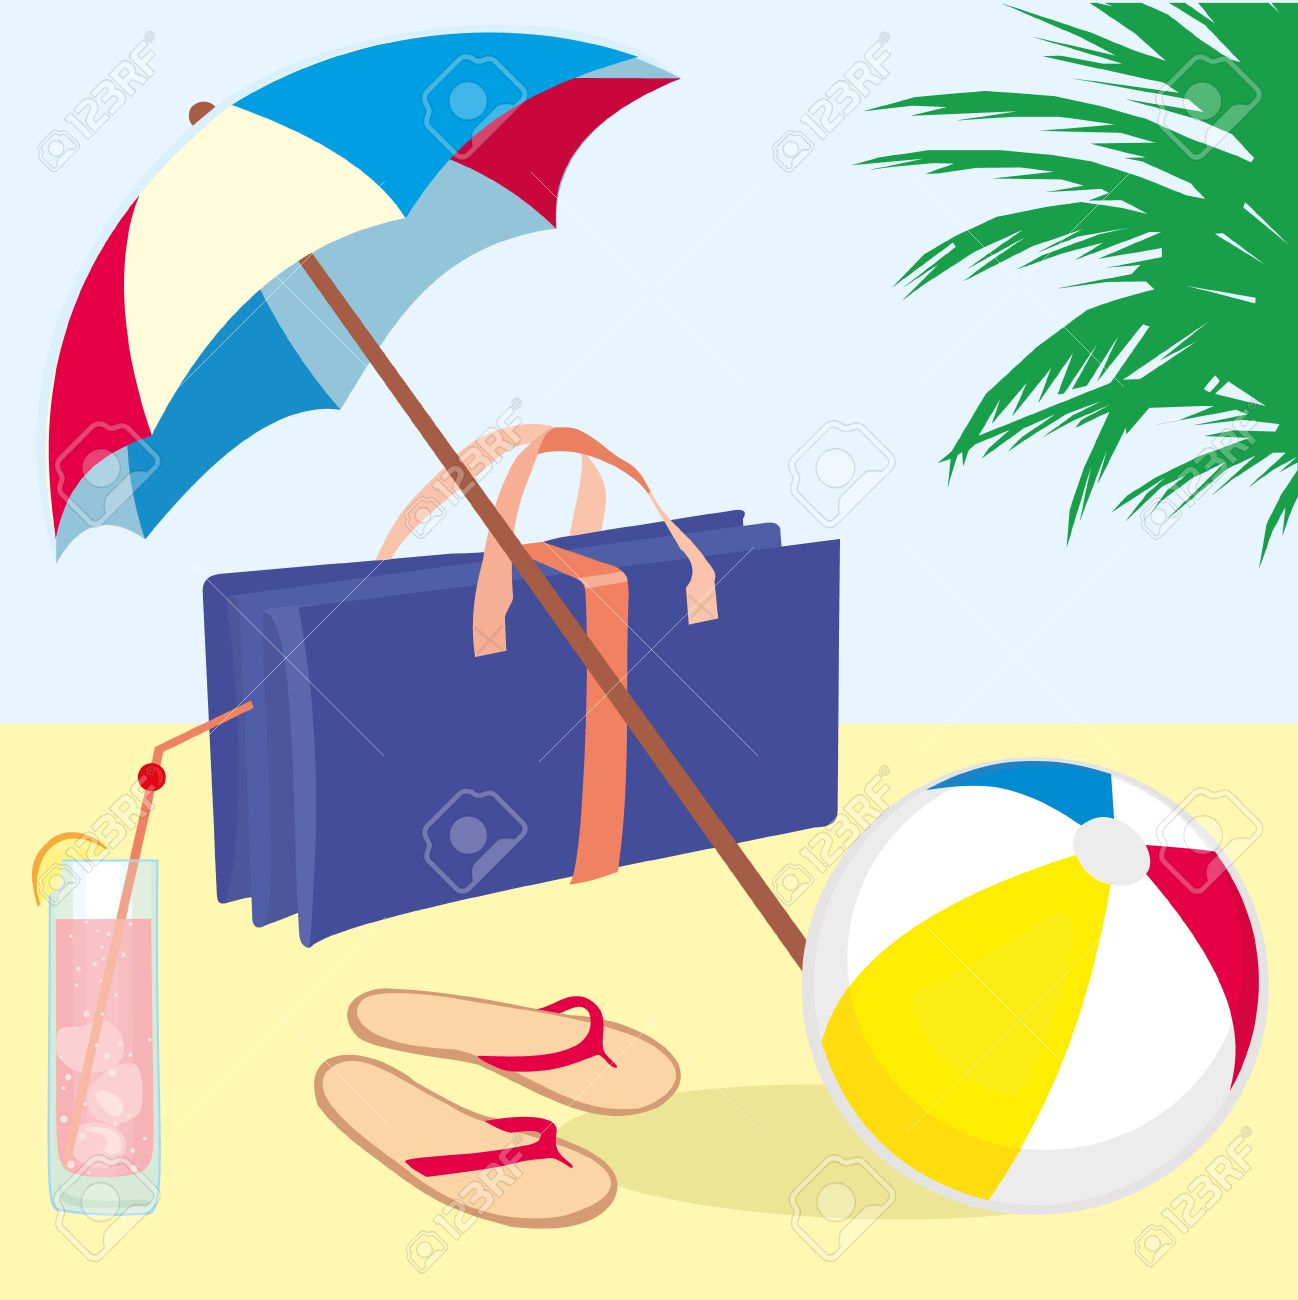 Sonnenschirm strand clipart  Summer Vacation Beach With Flip Flops, Beach Ball, Cocktail ...